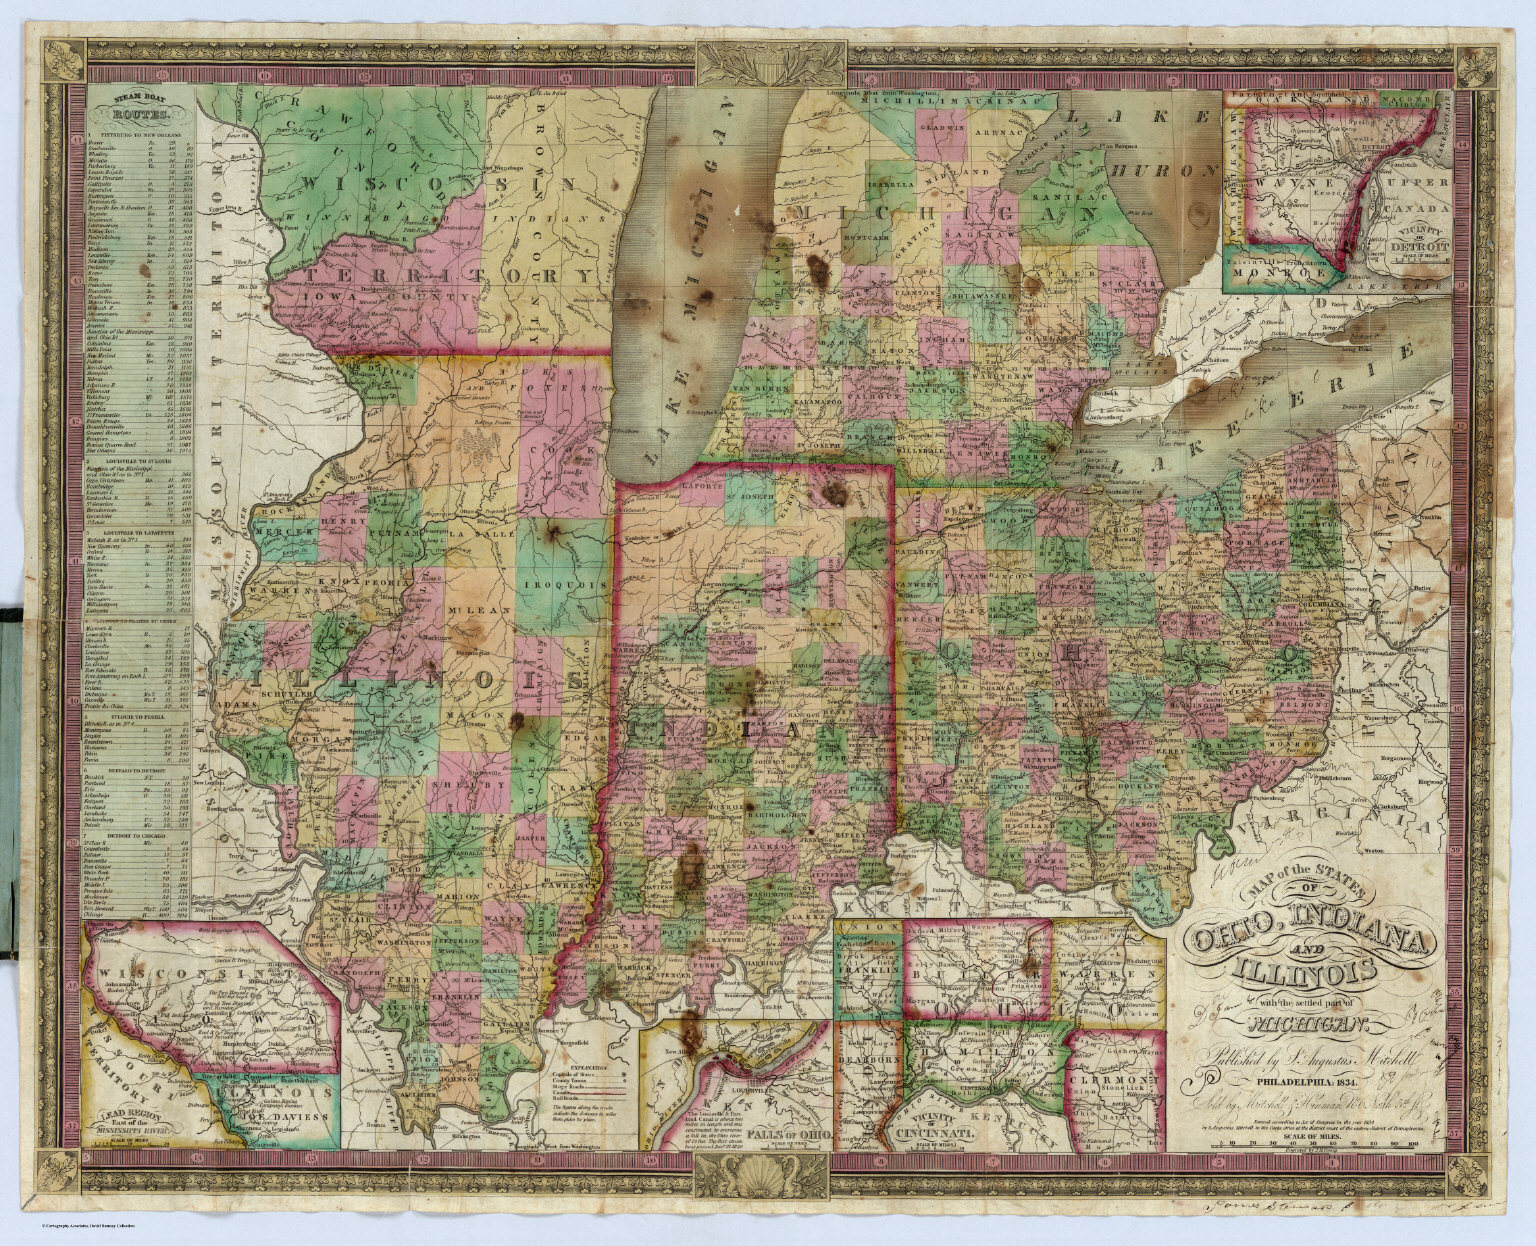 Ohio, Indiana And Illinois - David Rumsey Historical Map Collection